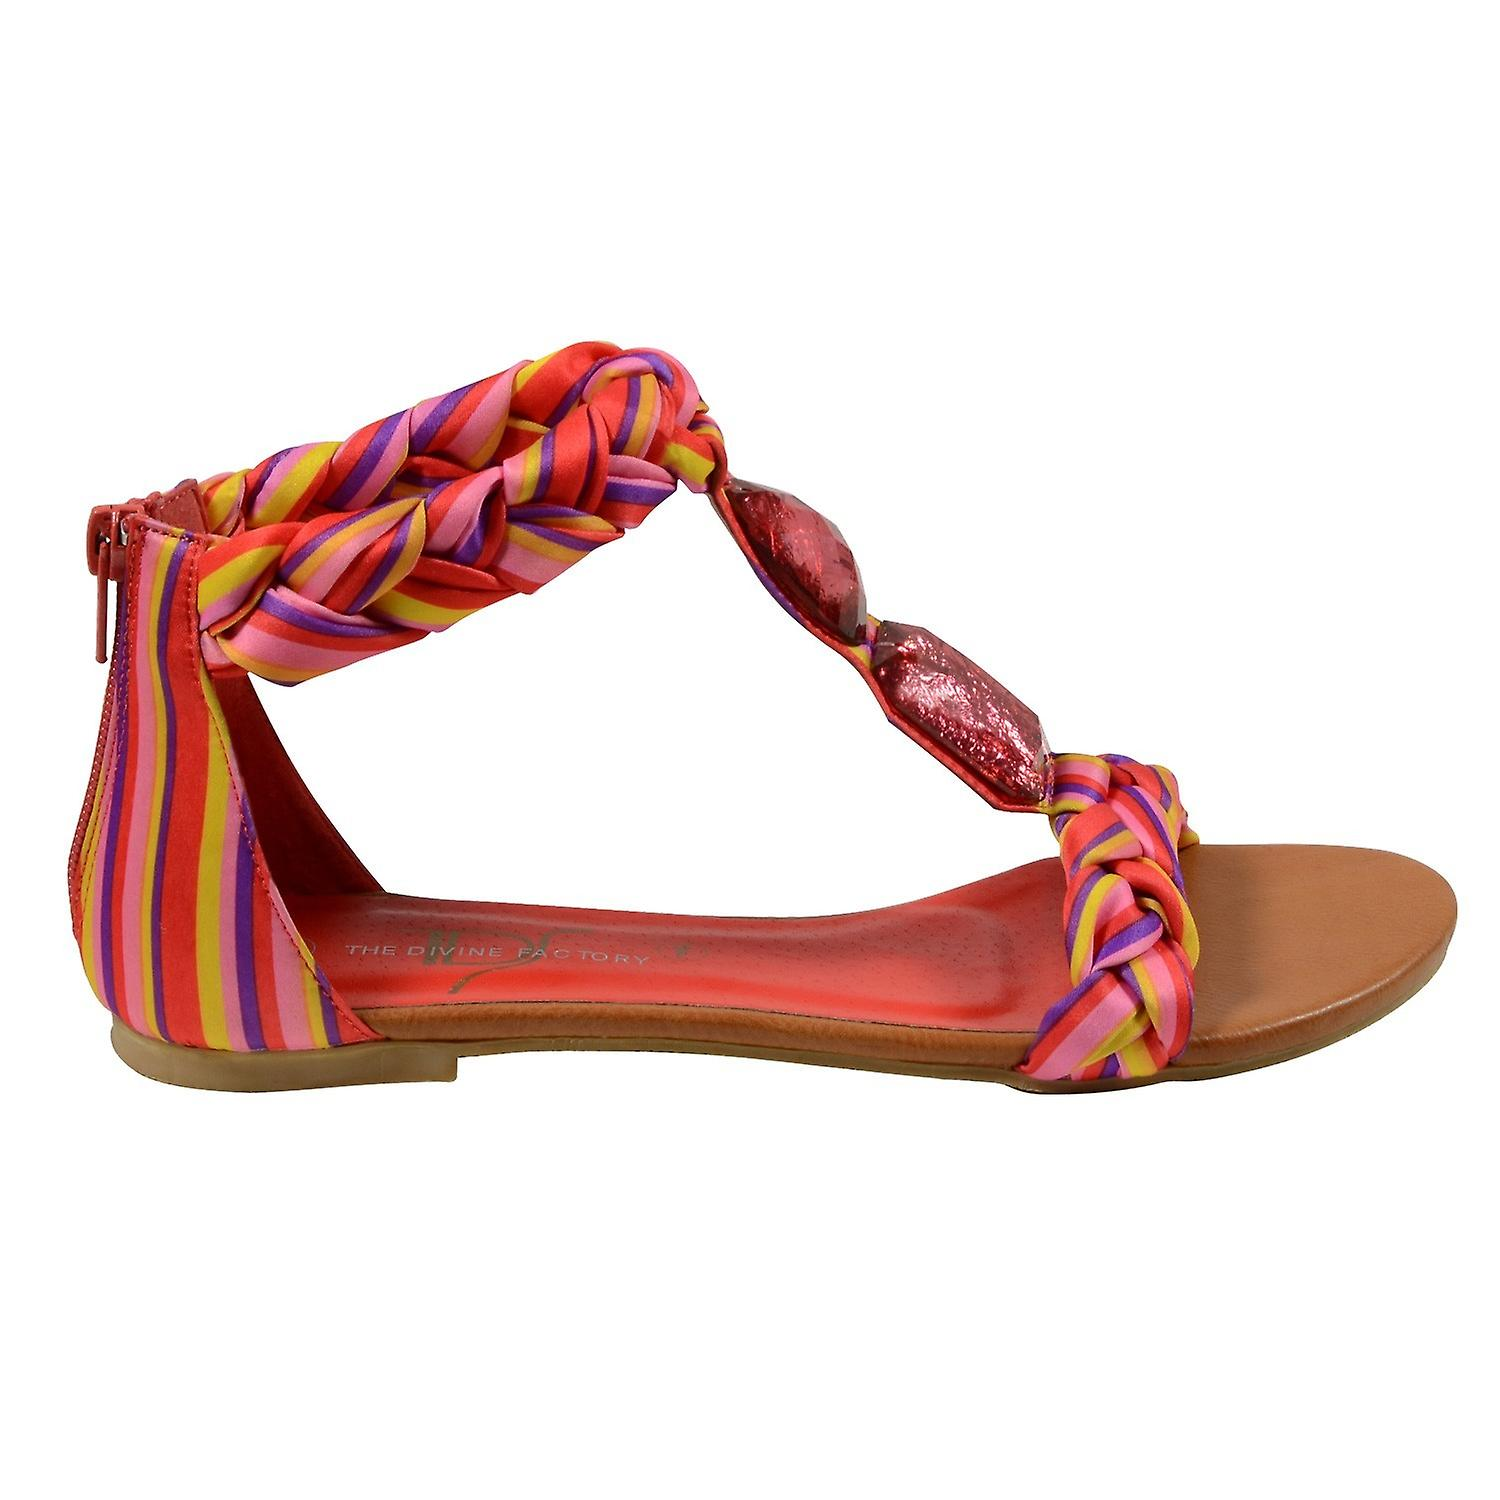 Waooh - Shoes - Sandals braided TDF516 The Divine Factory